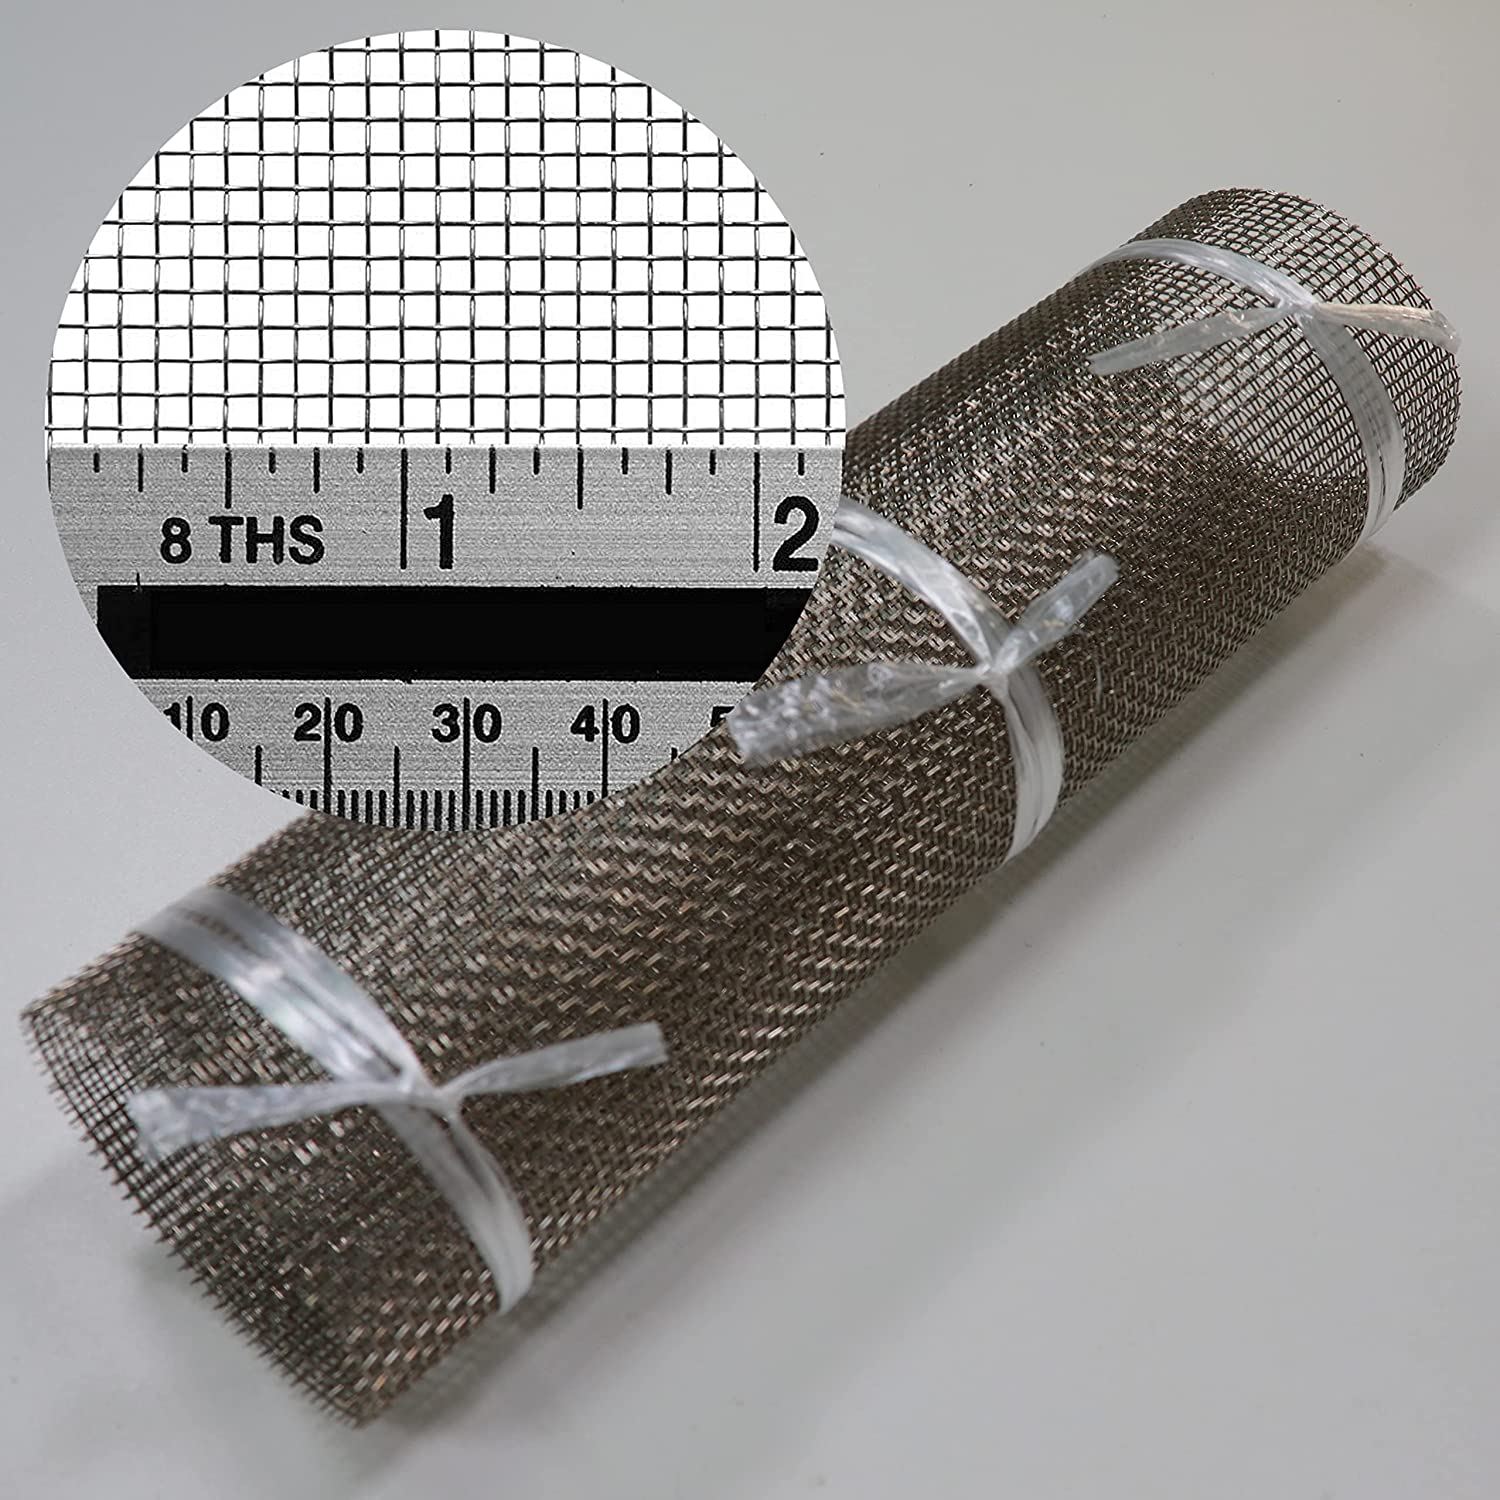 Woven Wire Super popular specialty store 10 Mesh - 12